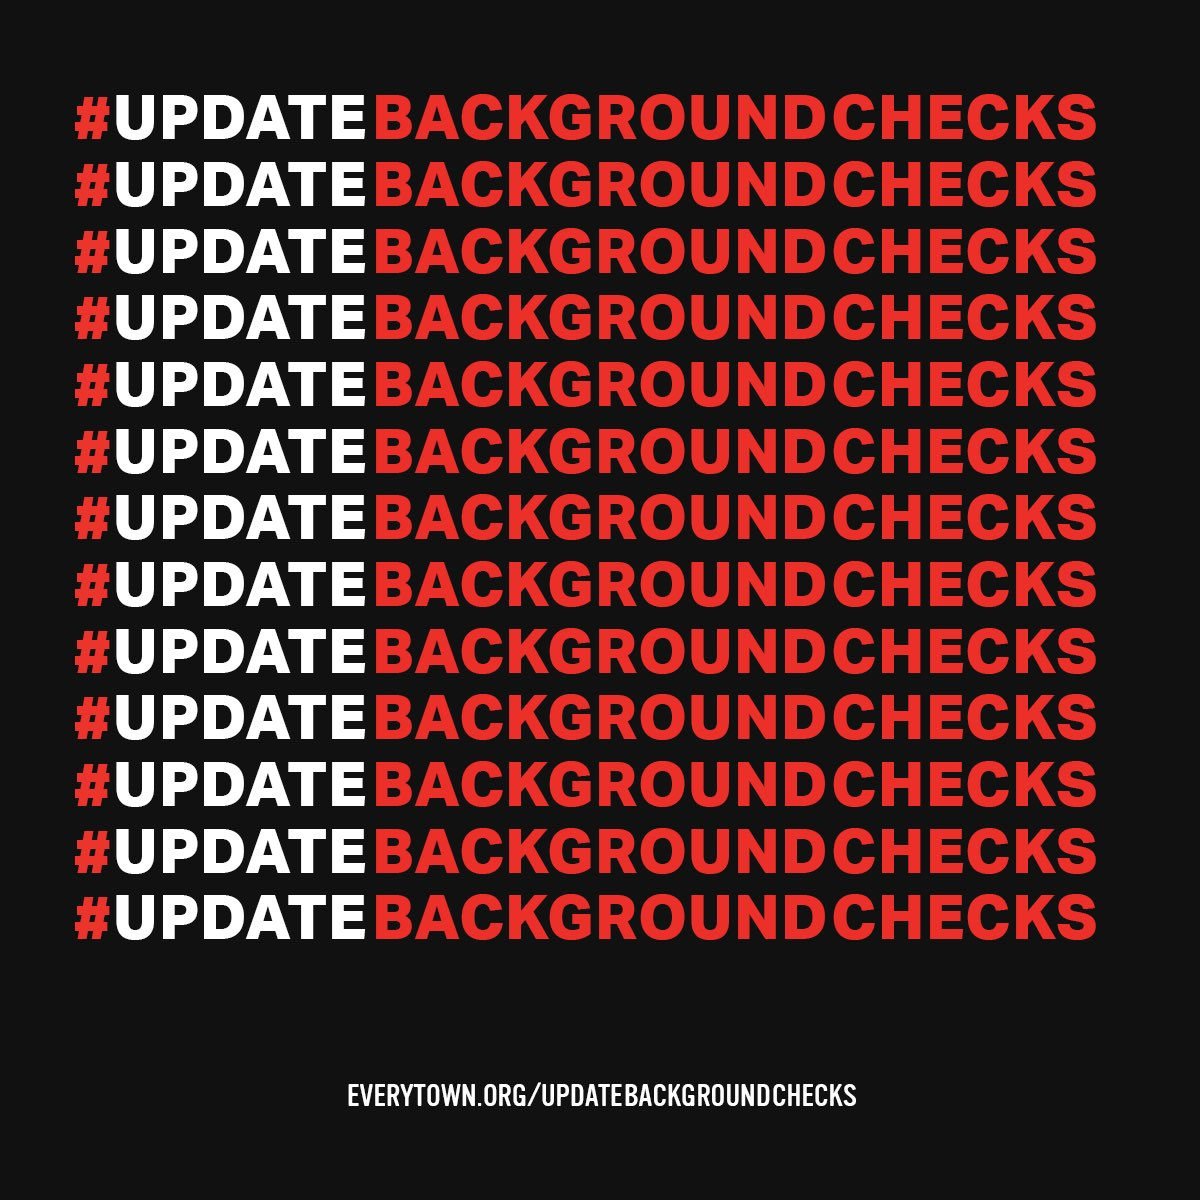 Today, nearly a quarter of Americans who obtain a firearm do so without a background check thanks to loopholes in our federal background checks system. That's why I'm asking my rep to #UpdateBackgroundChecks. Join me: https://t.co/XHL8bgR3XF